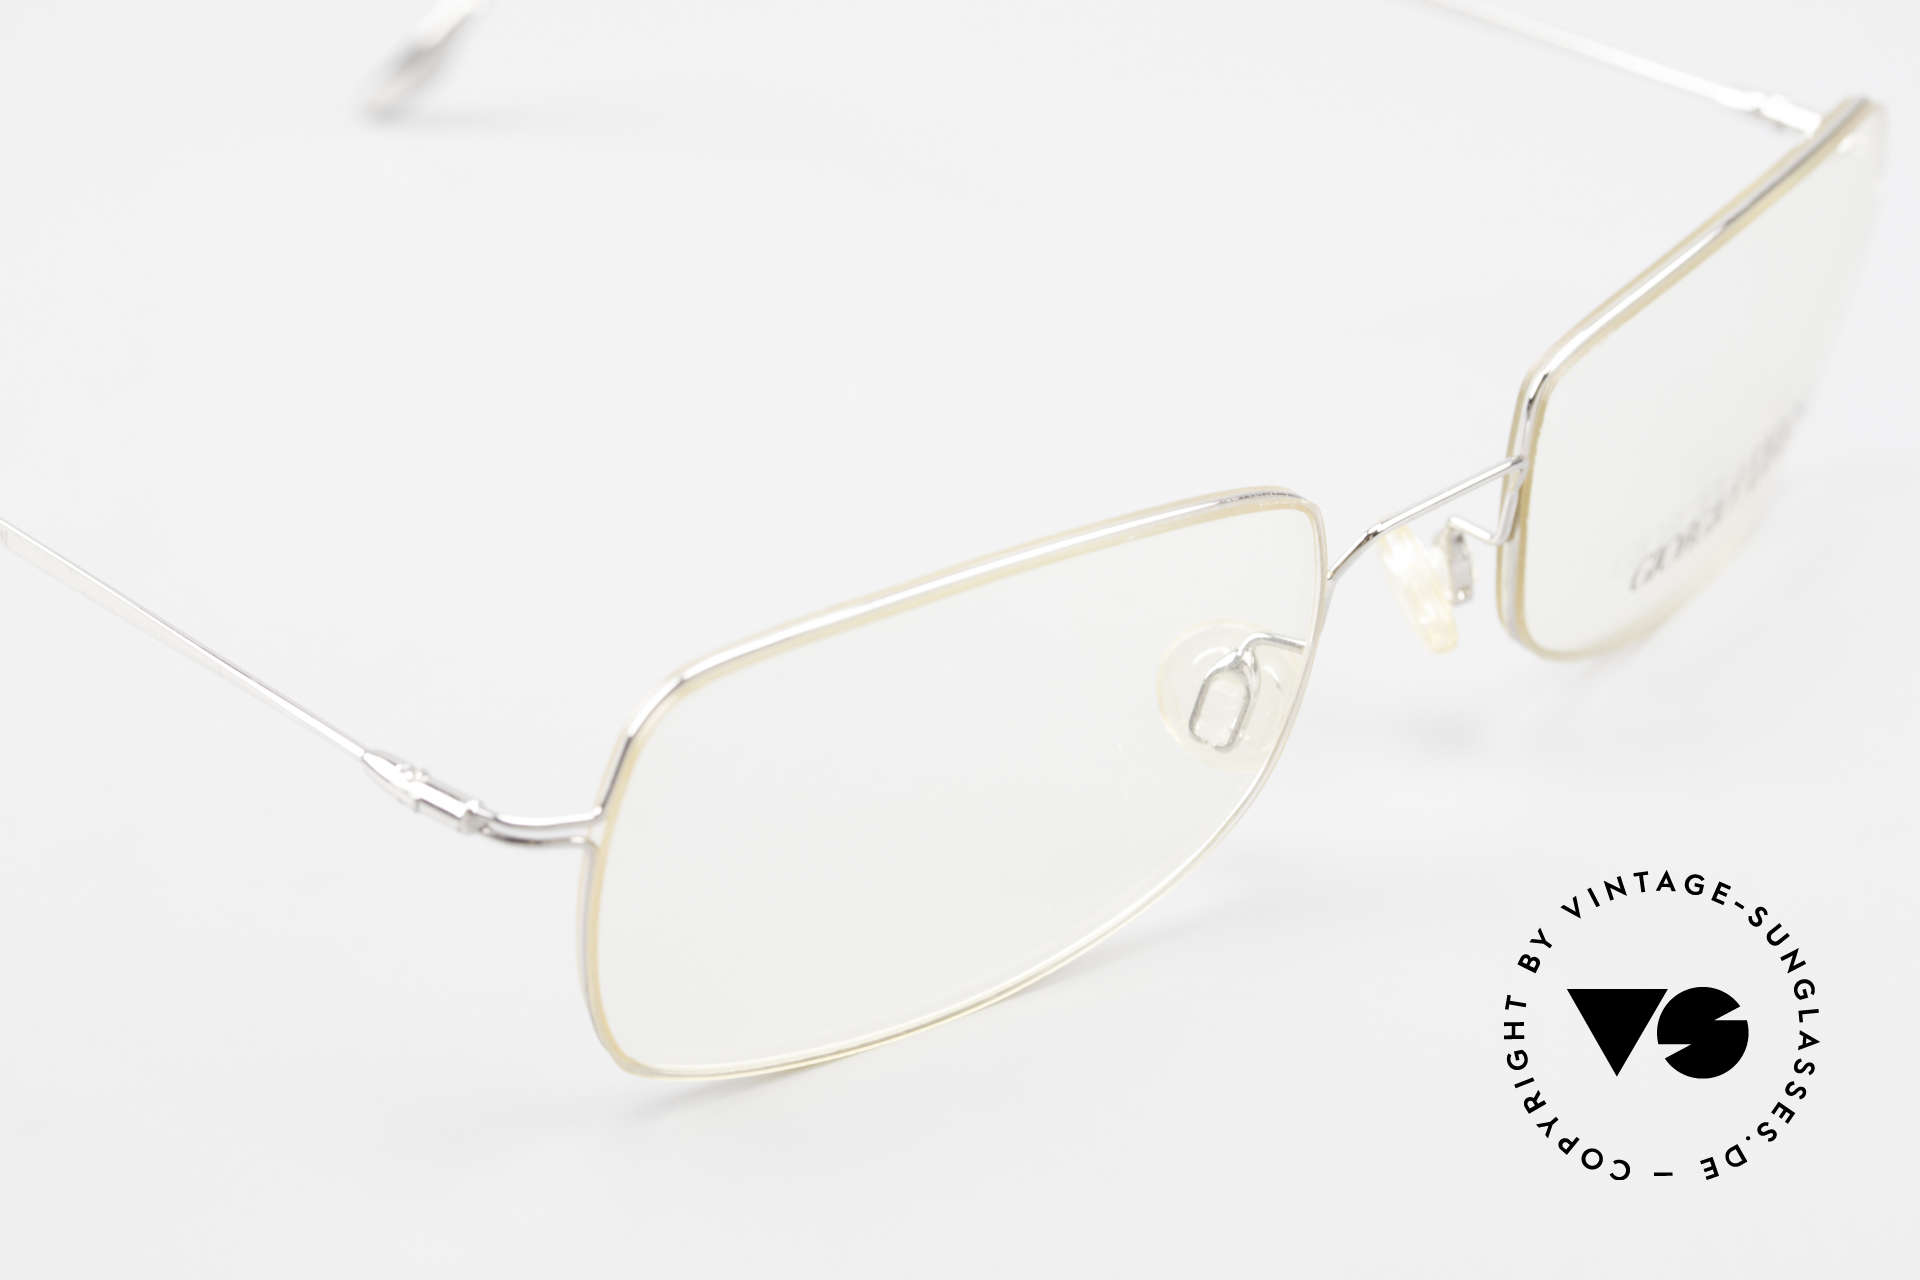 Giorgio Armani 1091 Small Wire Glasses Unisex, the metal frame can be glazed with lenses of any kind, Made for Men and Women